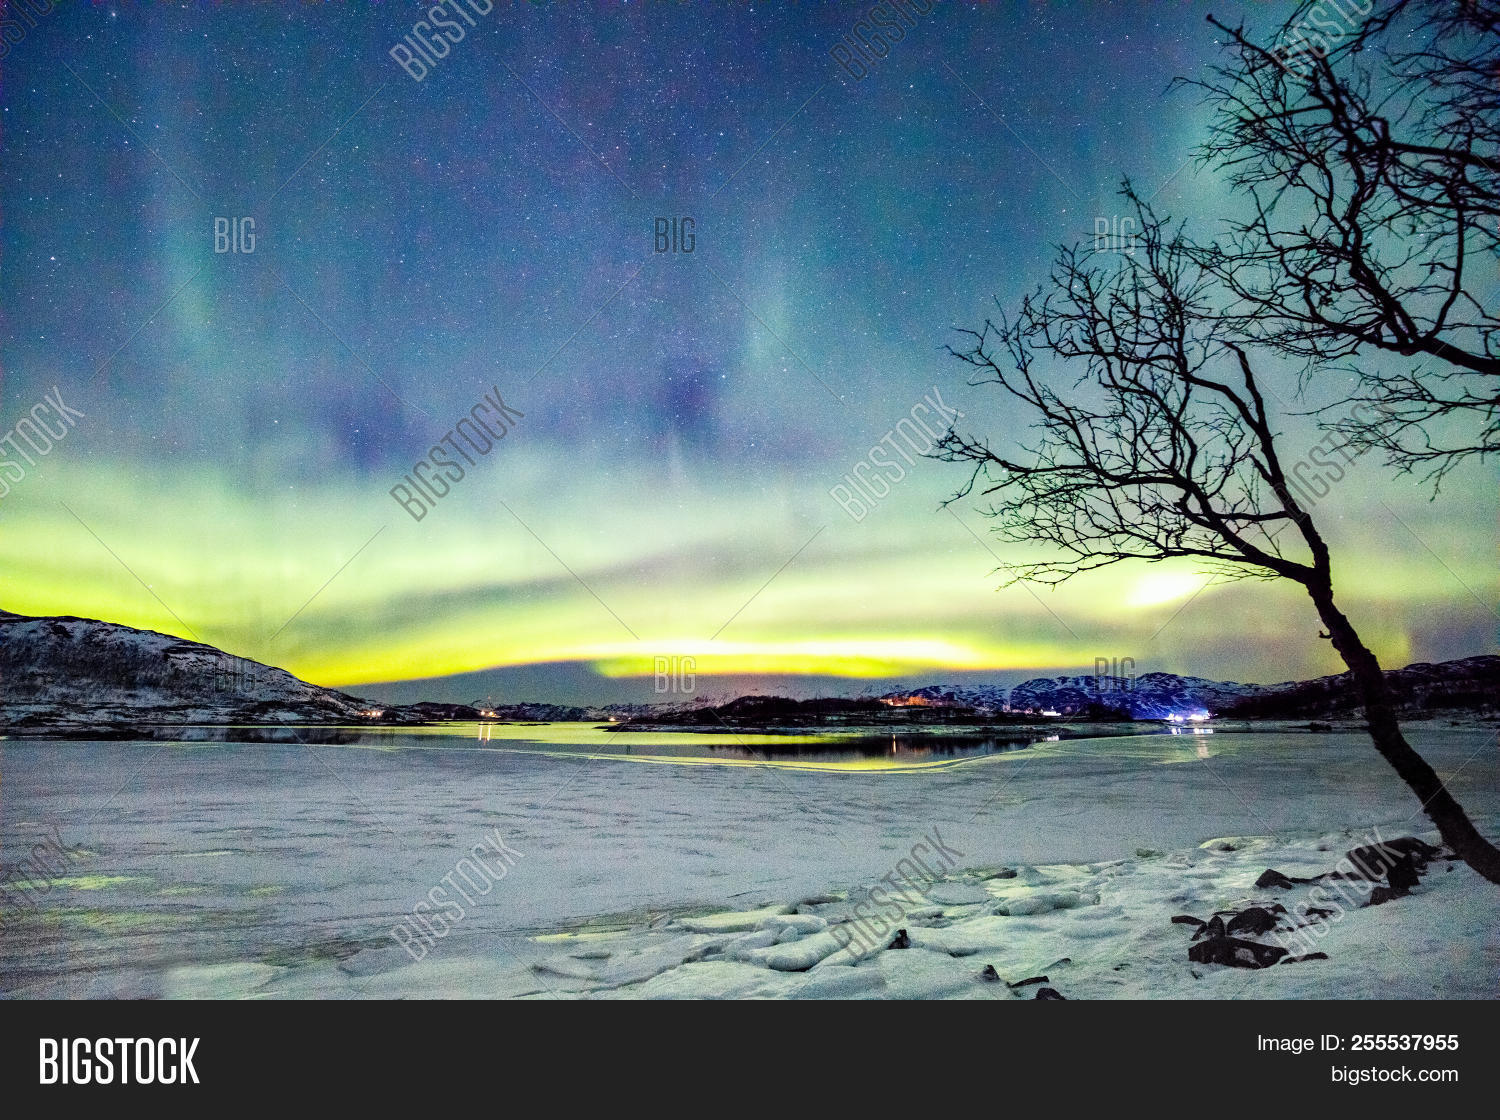 arctic,aurora,beautiful,borealis,cold,finland,fjord,green,lagoon,landscape,lapland,light,mountain,nature,night,nordic,north,northern,norway,phenomena,pole,reflaction,scandinavia,scenic,solar,star,stunning,sweden,tromso,wind,winter,wonder